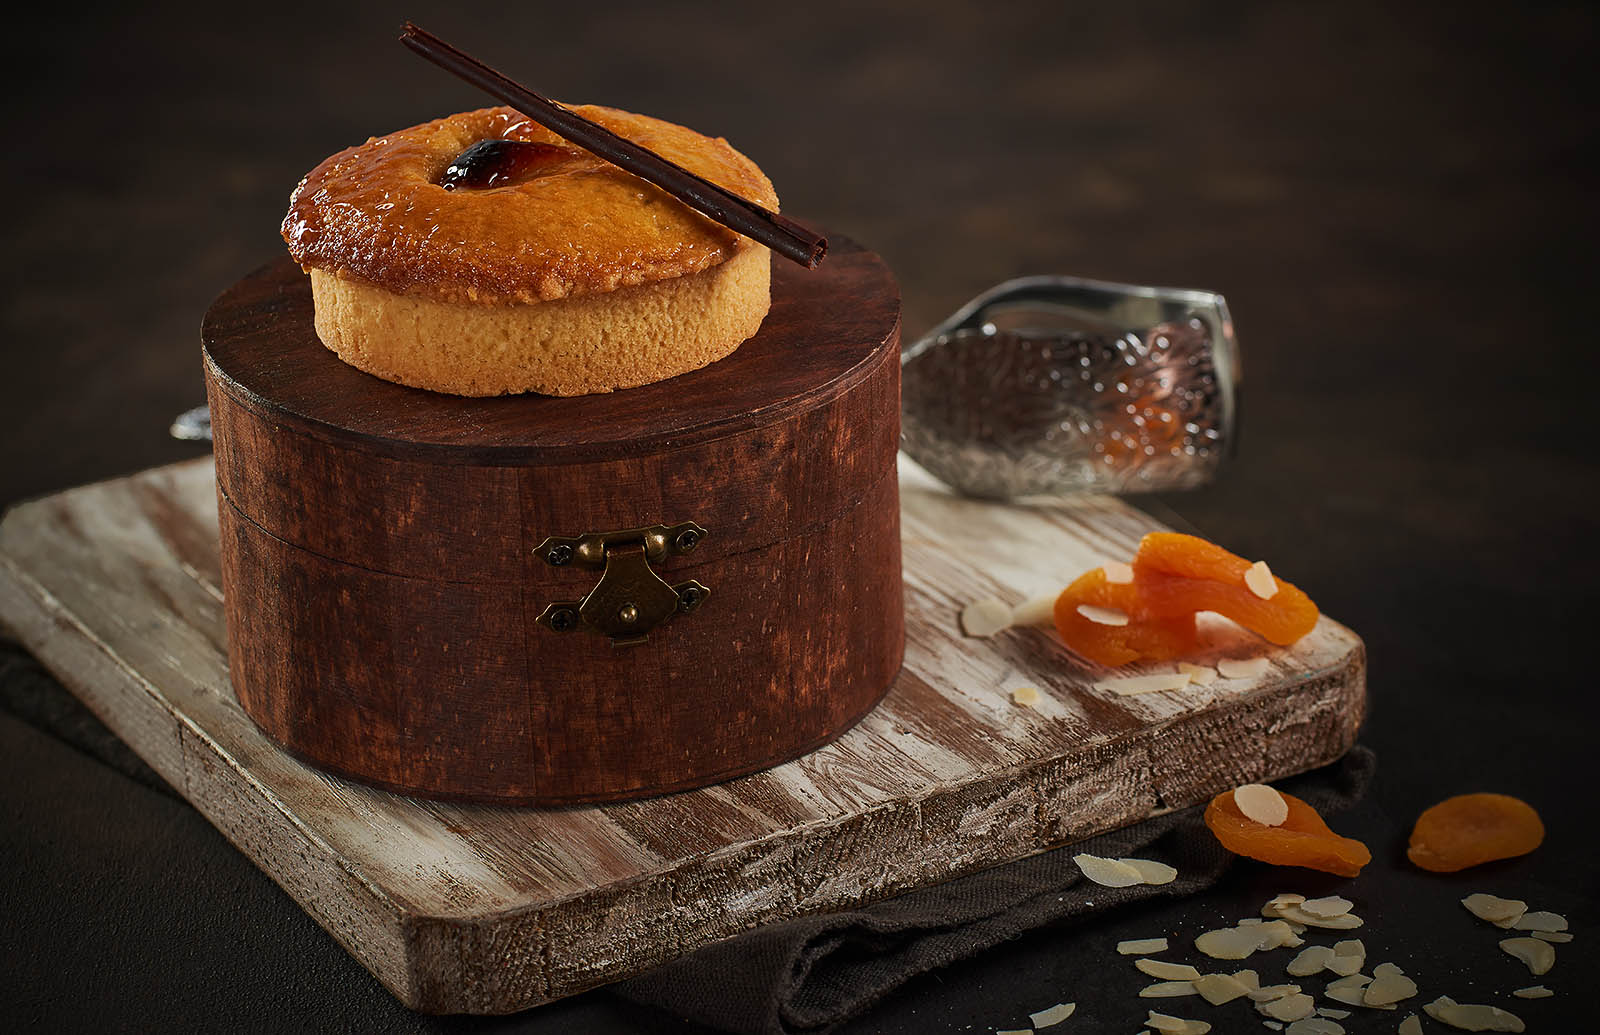 ALMOND GATEAUX DESSERT - the molten